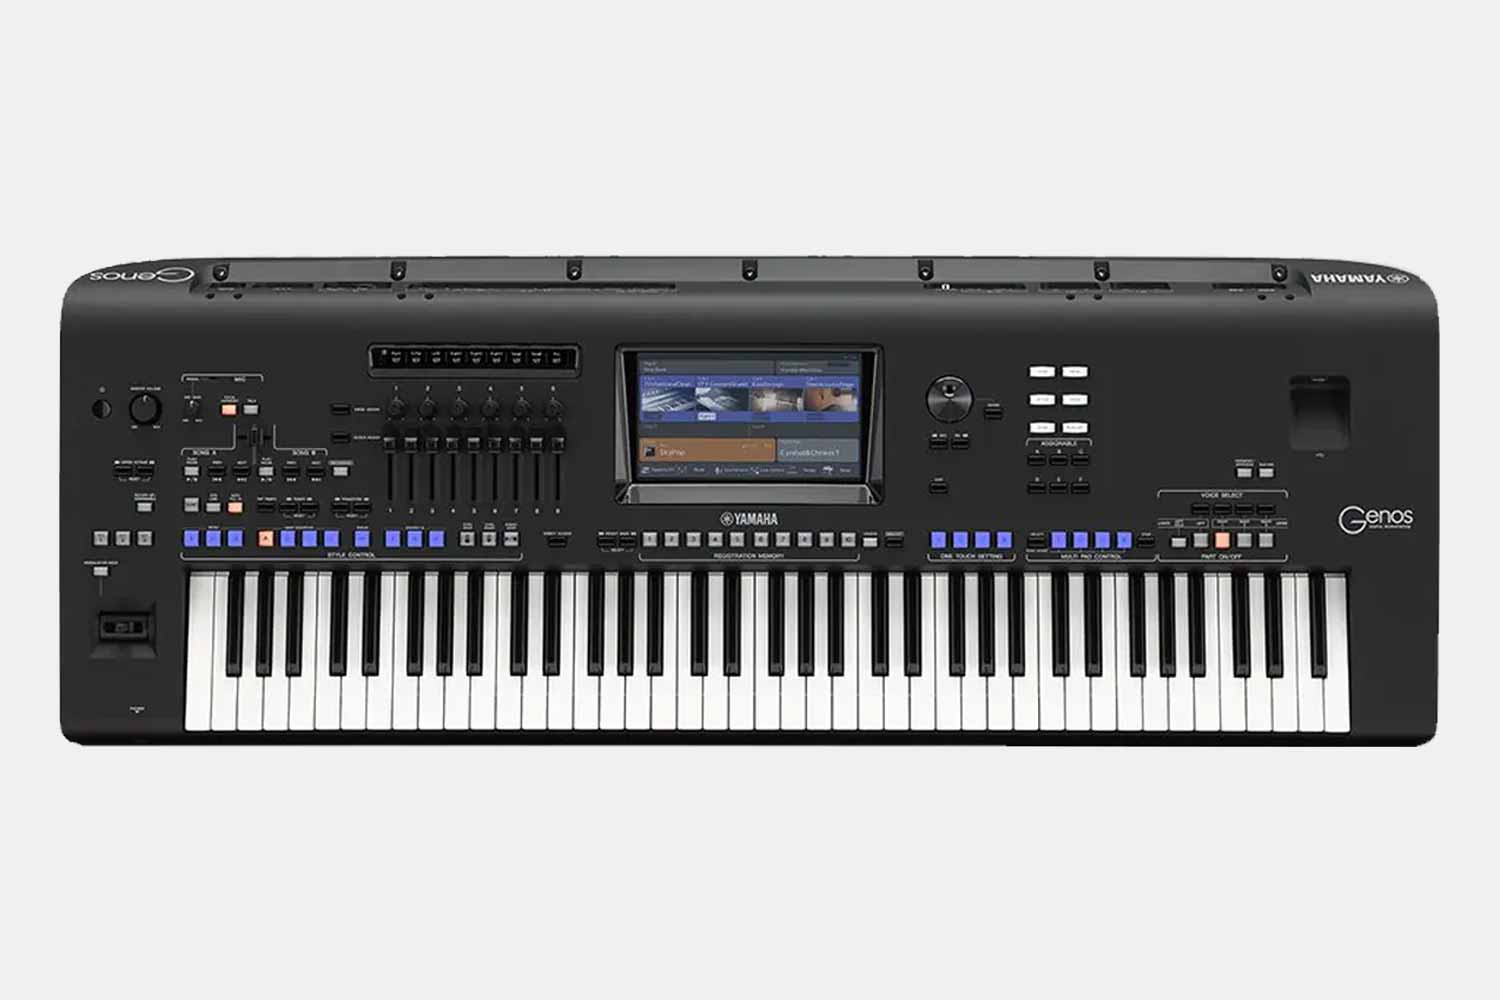 Yamaha GENOS - 76 Keys Keyboard Workstation (5752110153892)